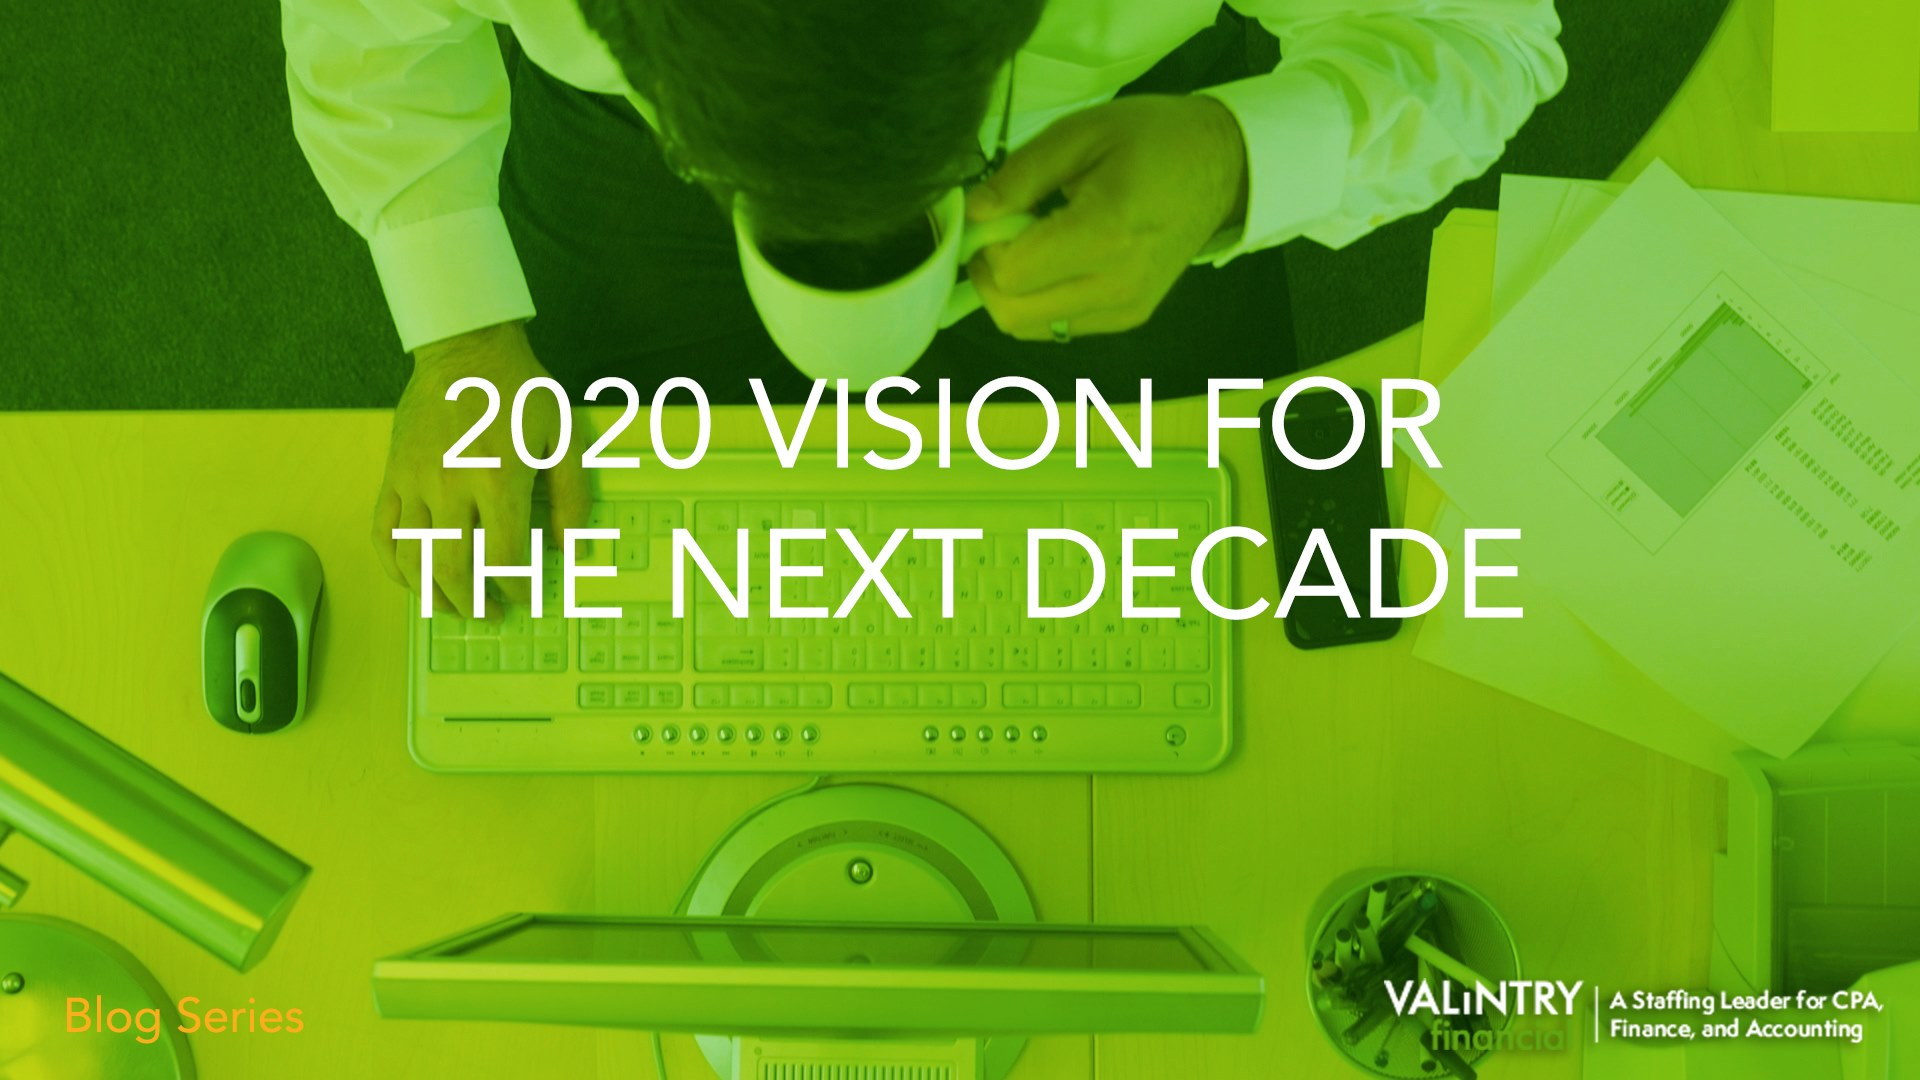 2020 Vision for The Next Decade